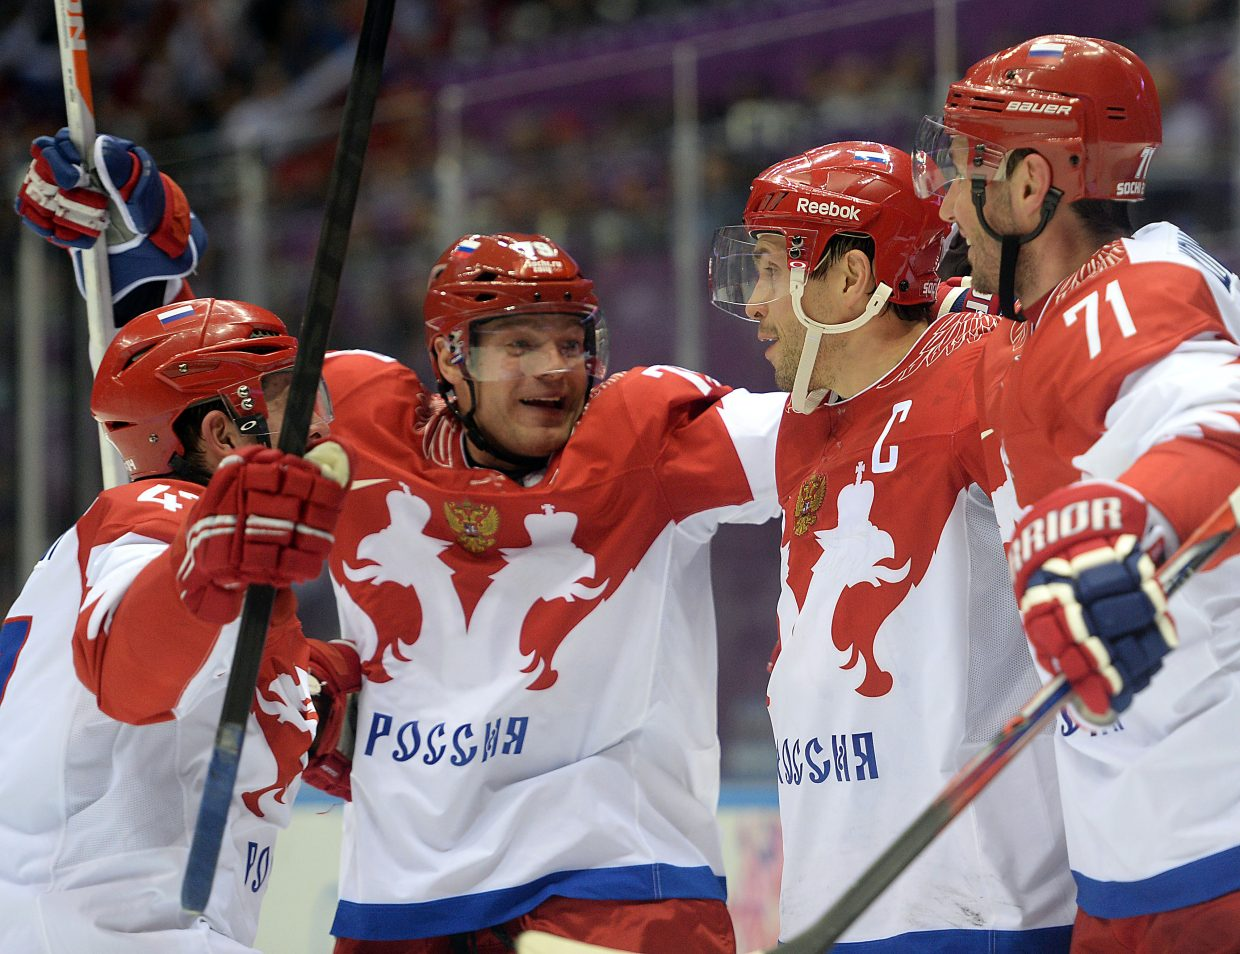 The Russian men's hockey team celebrates its first goal of the game Saturday, taking a 1-0 second-period lead on the United States.